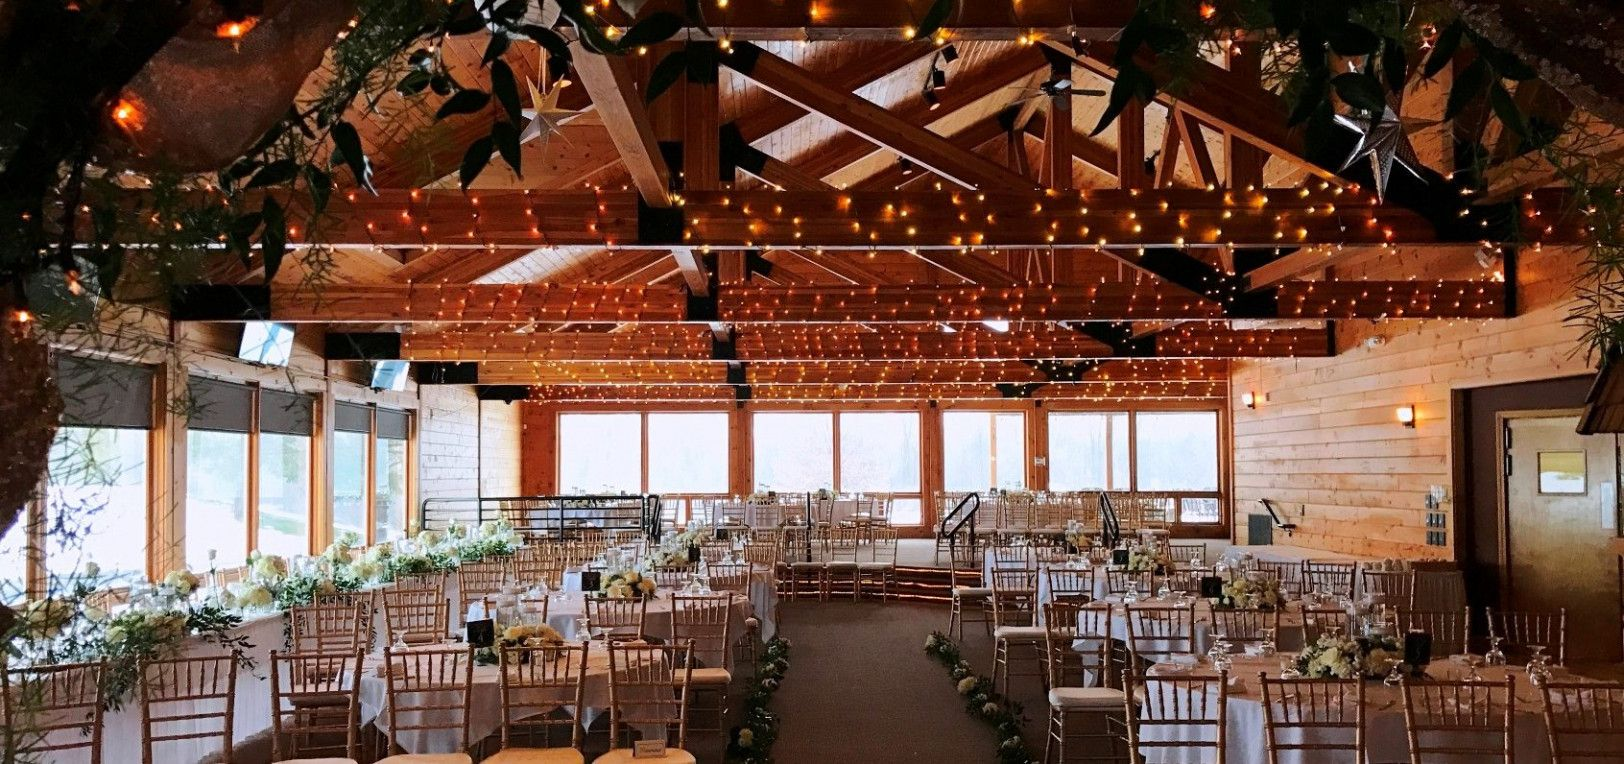 The Latest Trend In Barn Weddings In Michigan - The Latest ...